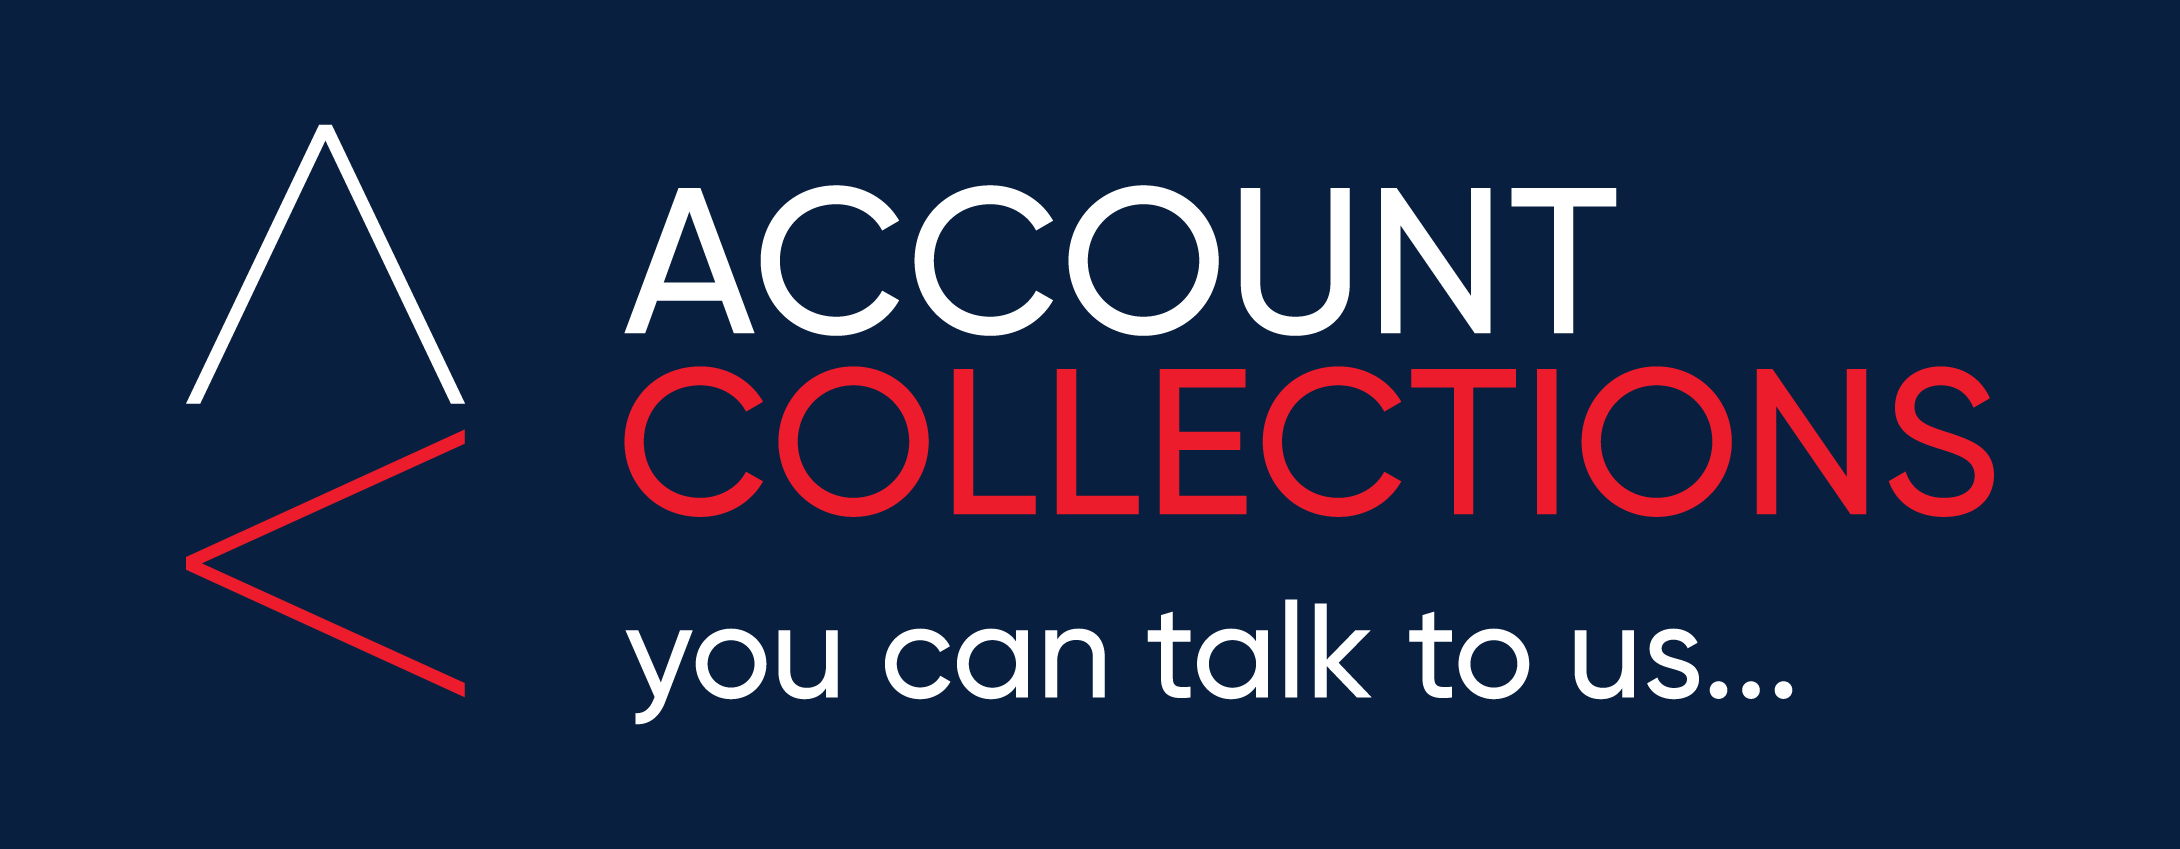 Account Collections